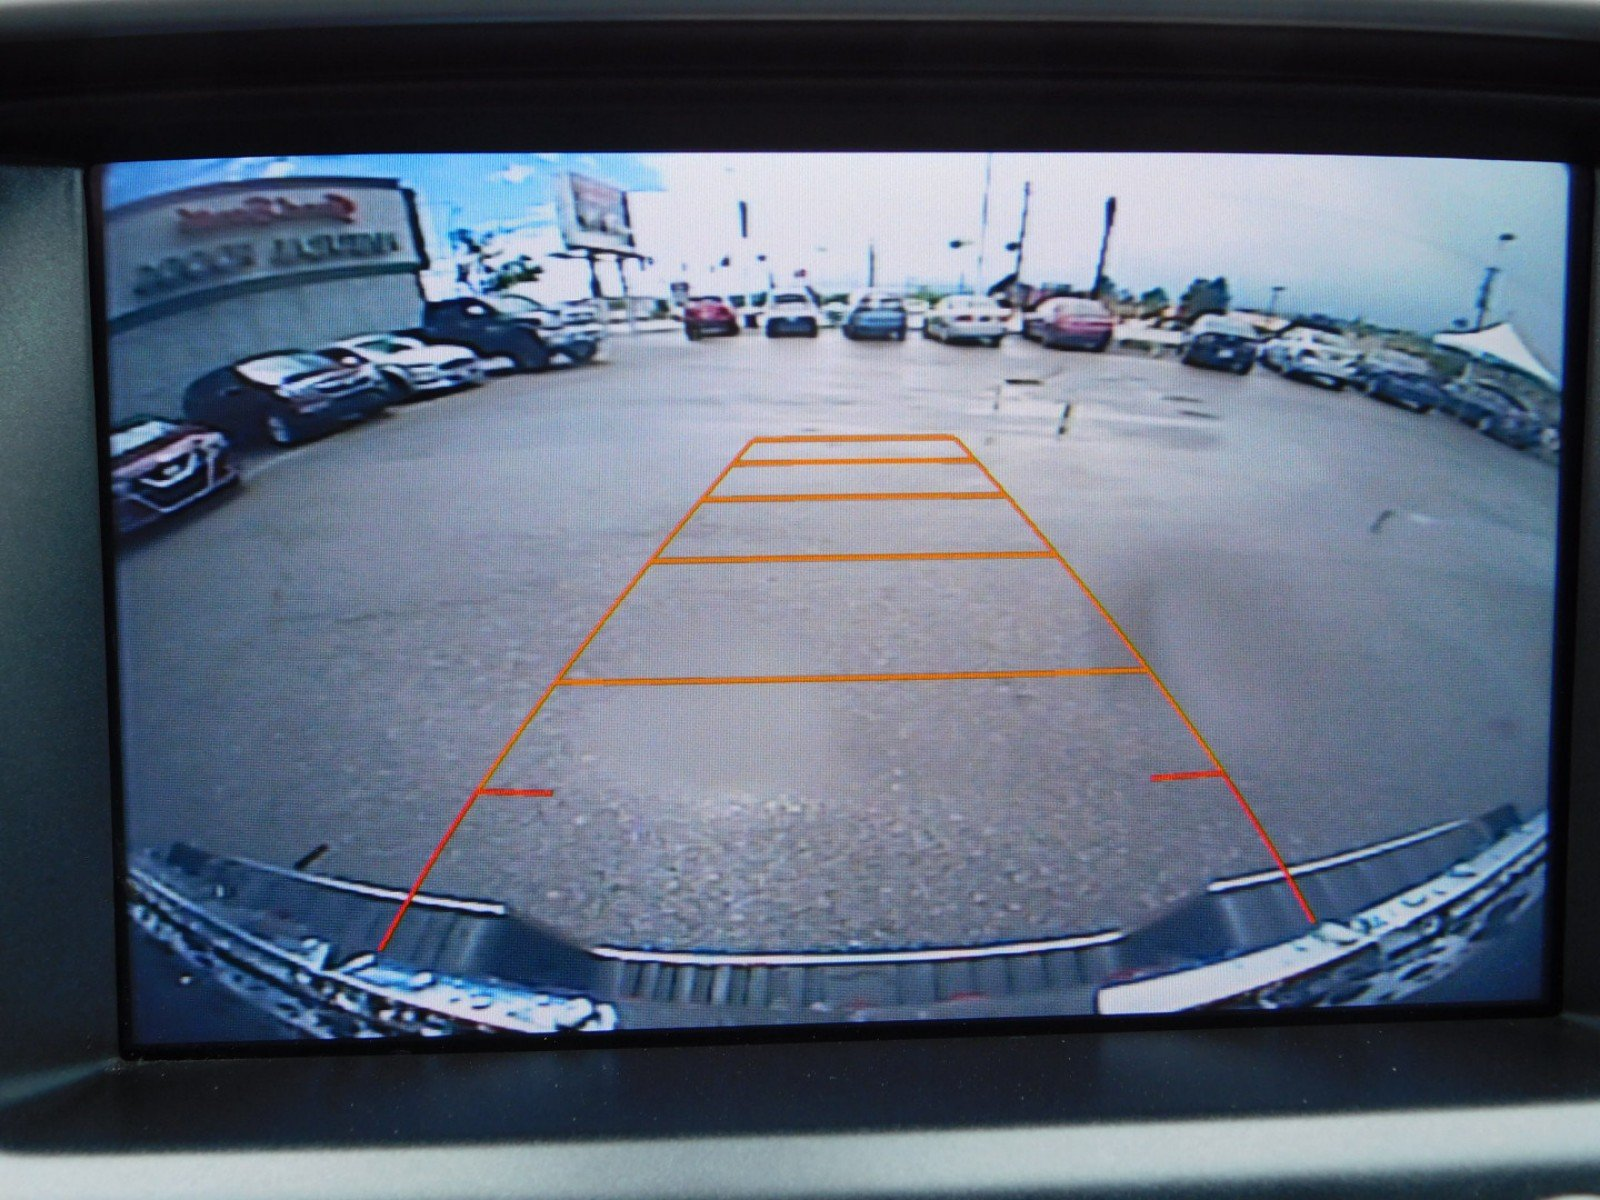 Bright Car Reverse Parking 4 Led Astern Camera Rearview Mirror Display Monitor For Bmw To Make One Feel At Ease And Energetic Rear View Monitors/cams & Kits